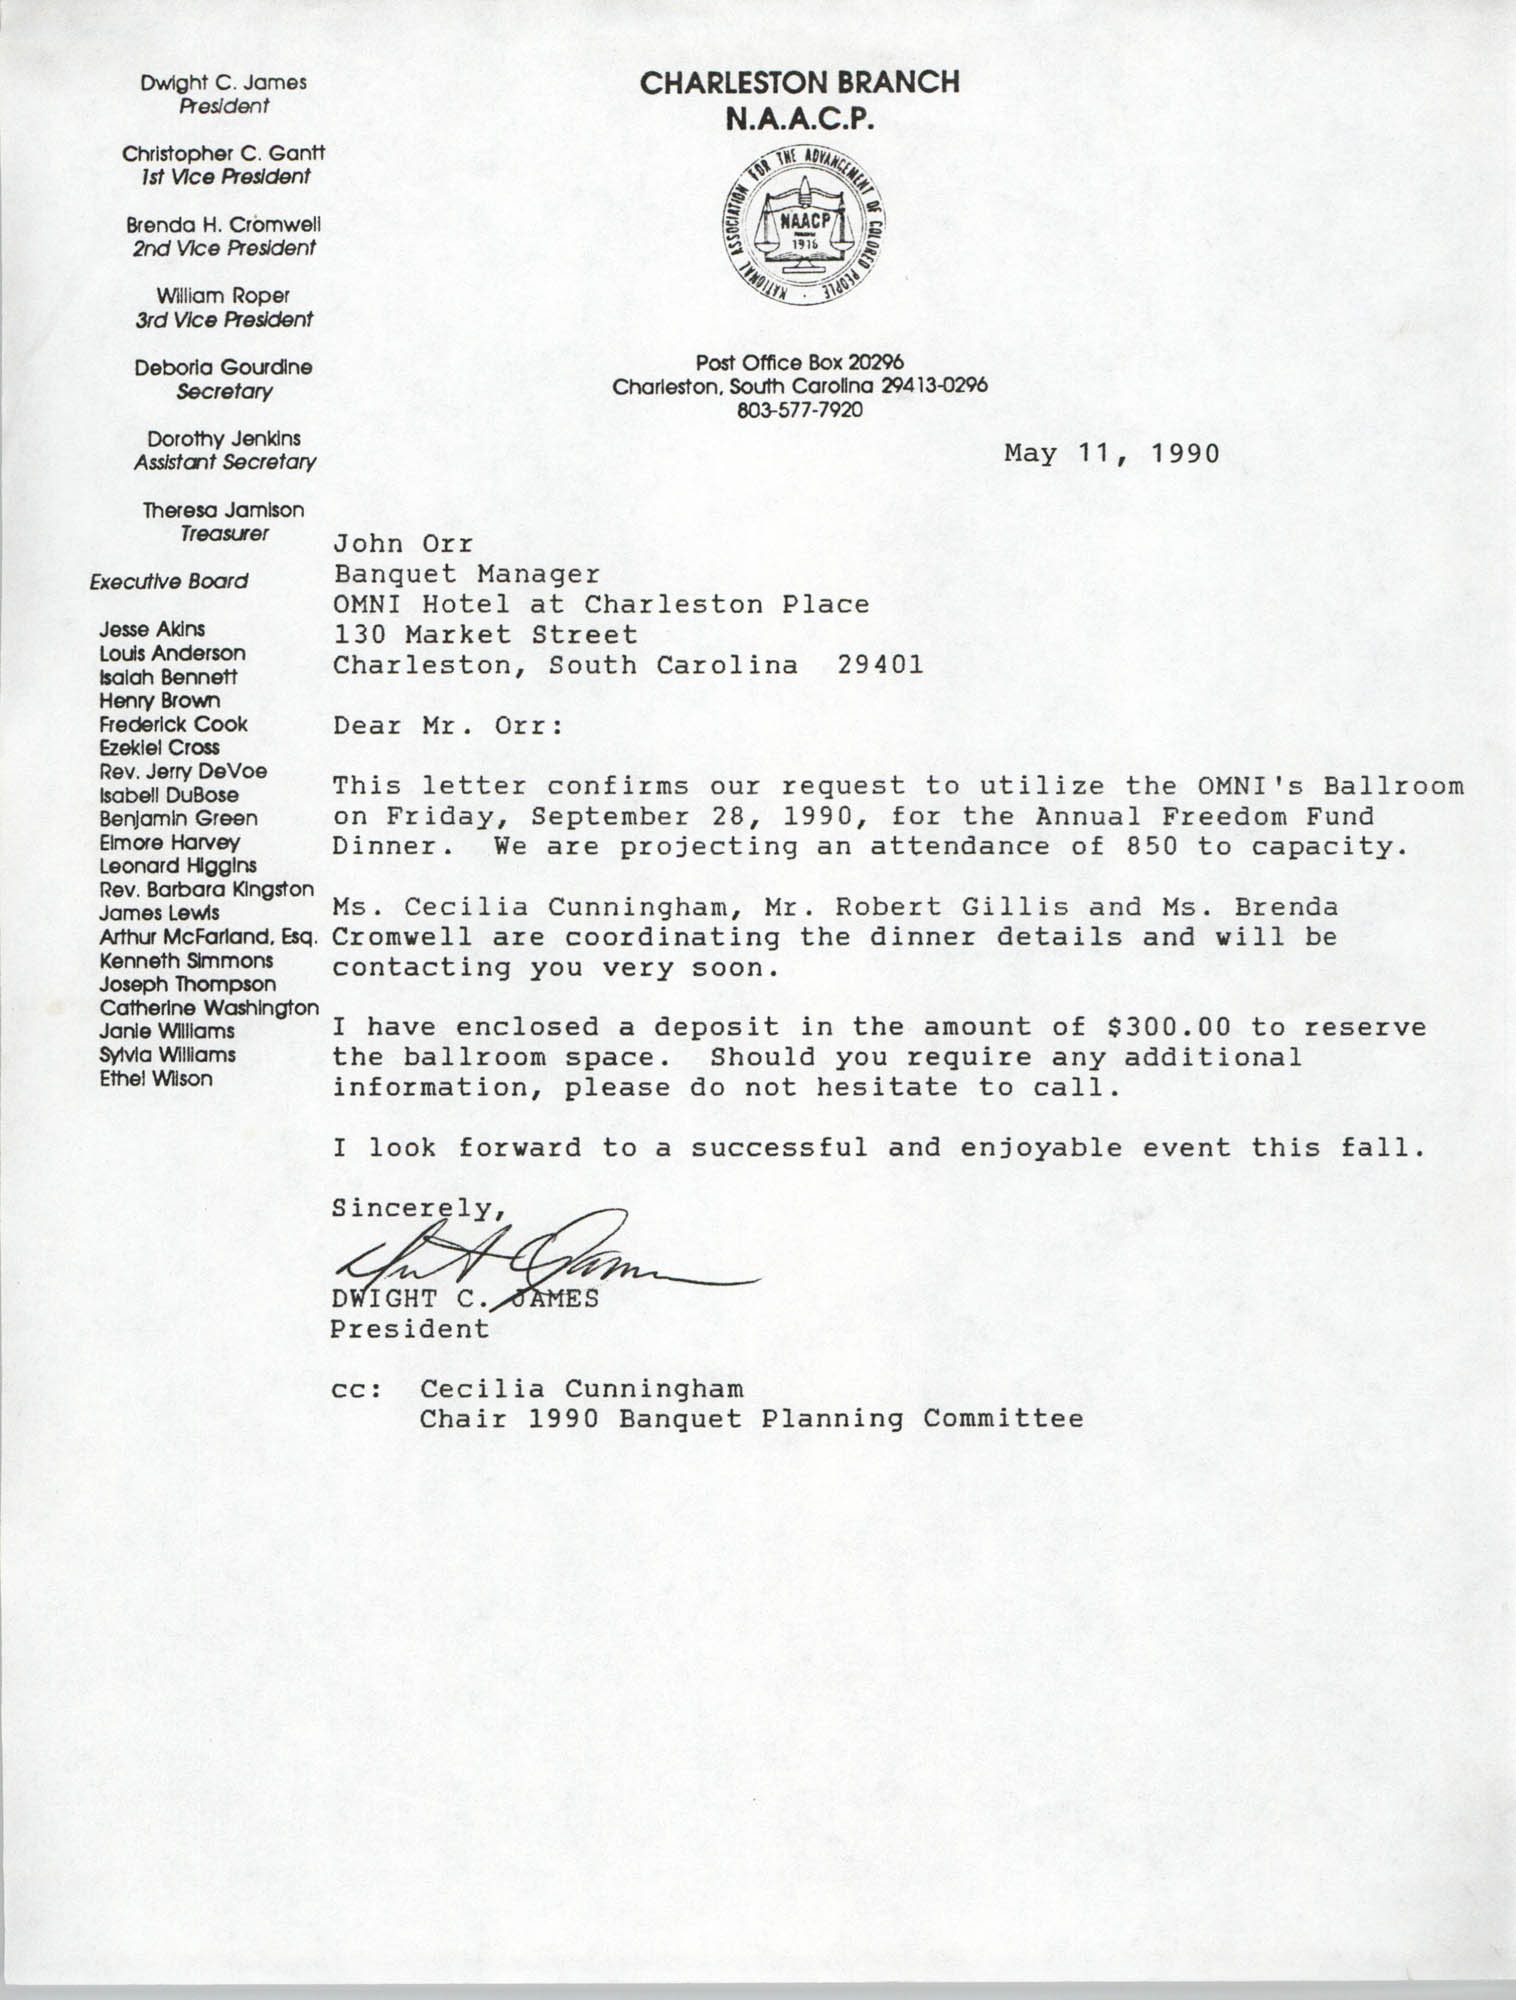 Letter from Dwight C. James to John Orr, May 11, 1990